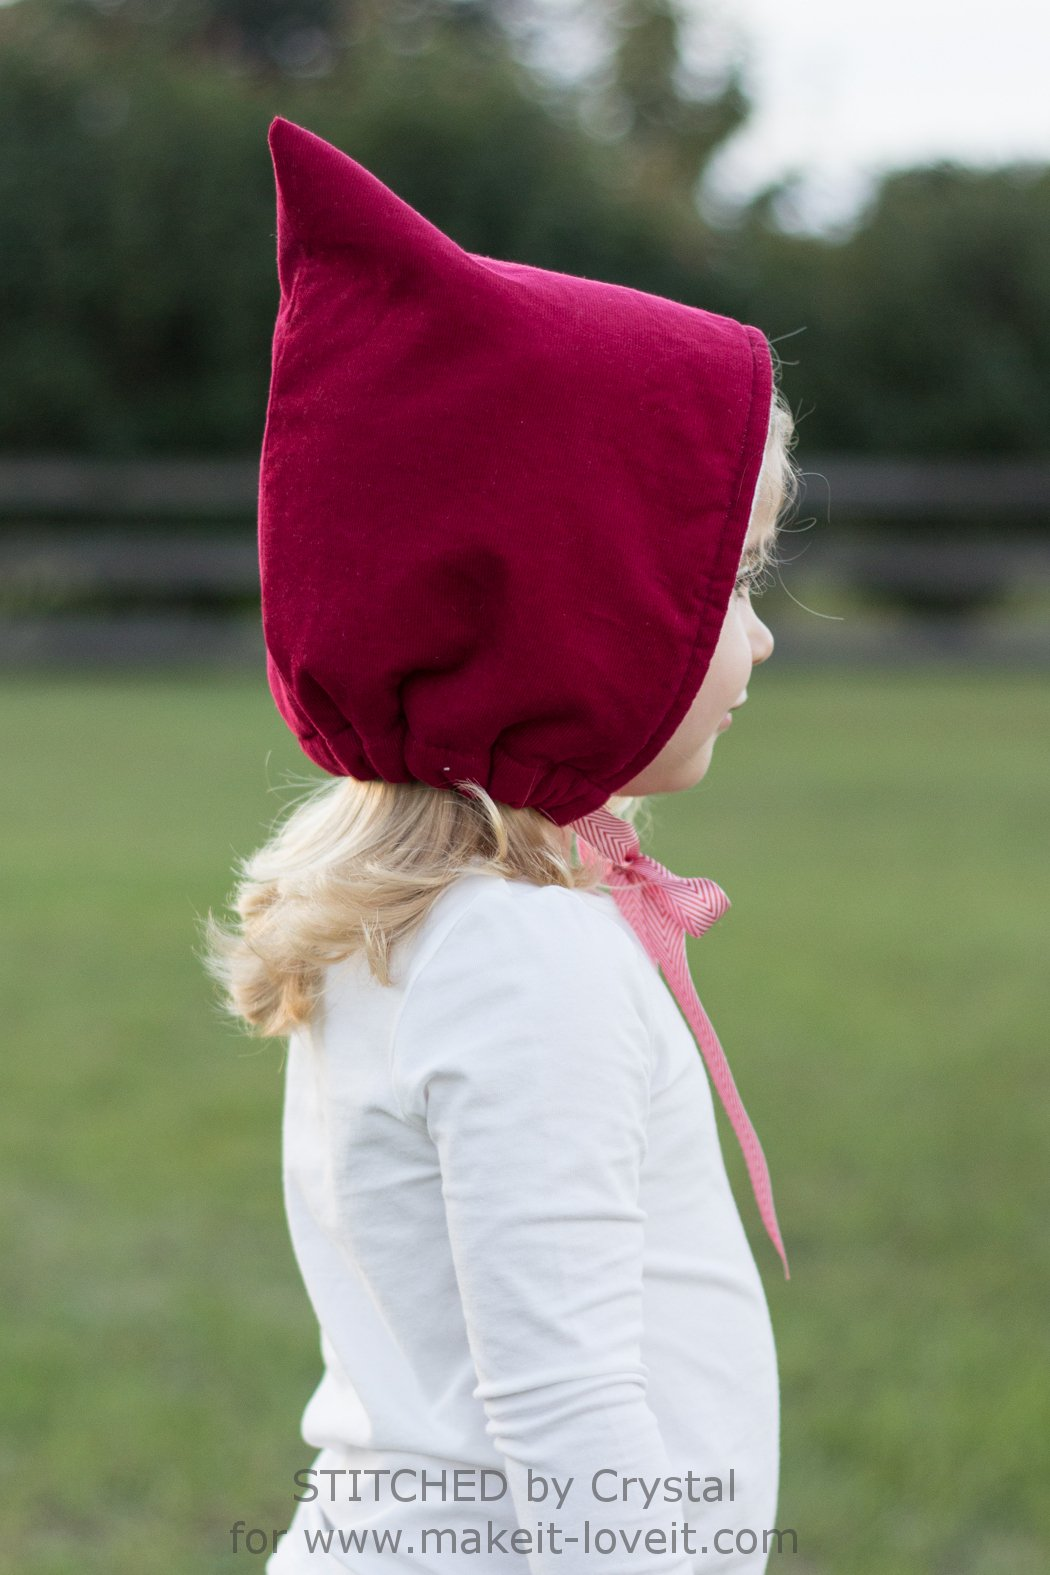 Sew a Pixie Hat/Bonnet....so simple to make and cute for winter! | via Make It and Love It